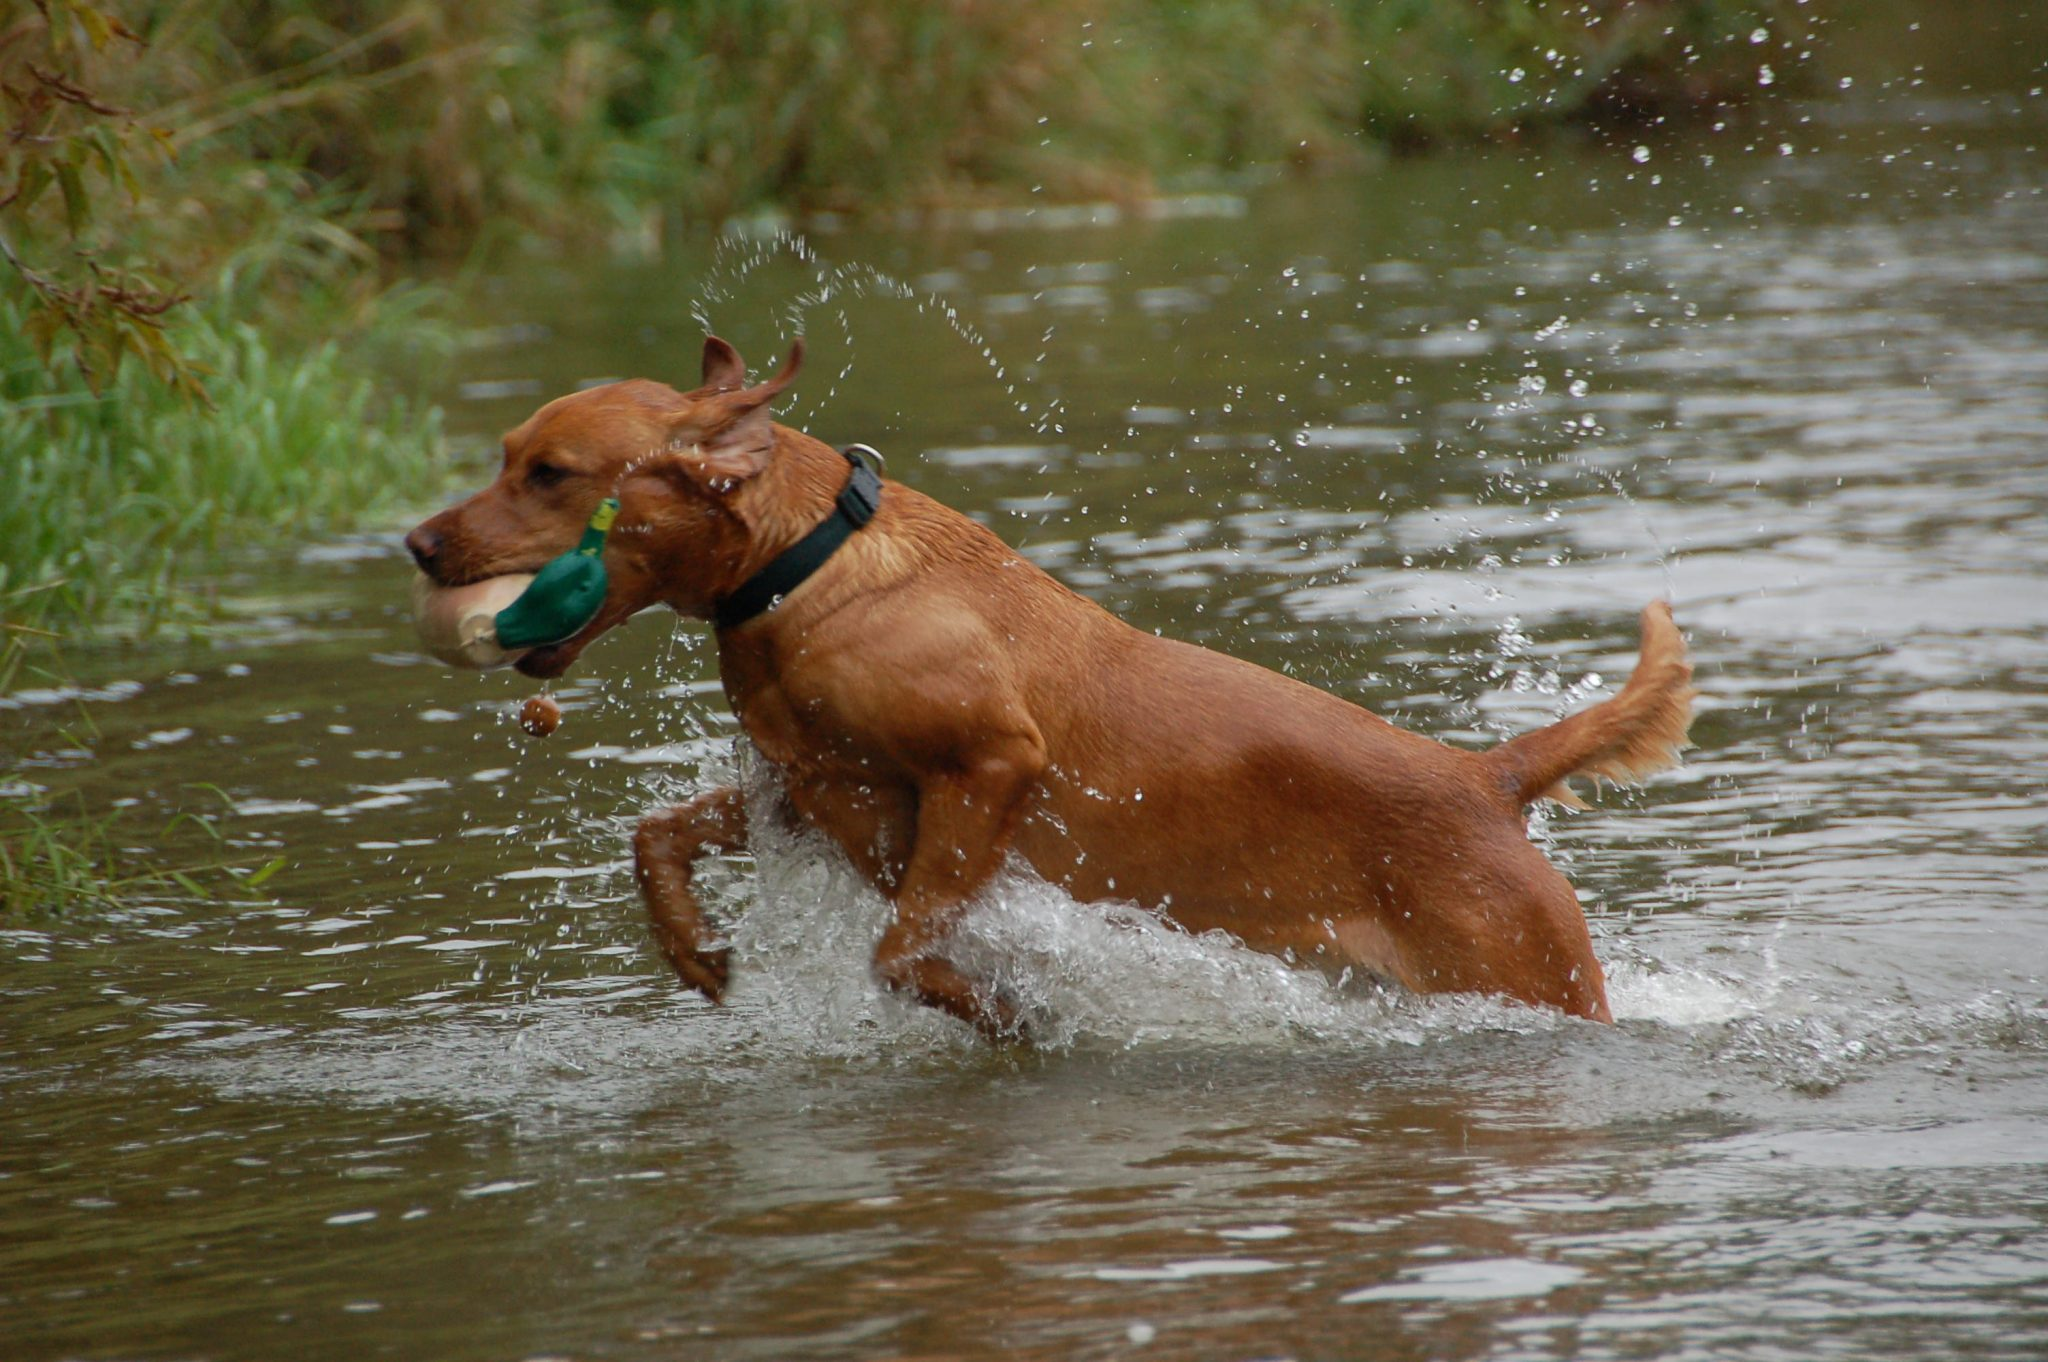 Labrador Retriever retrieving decoy